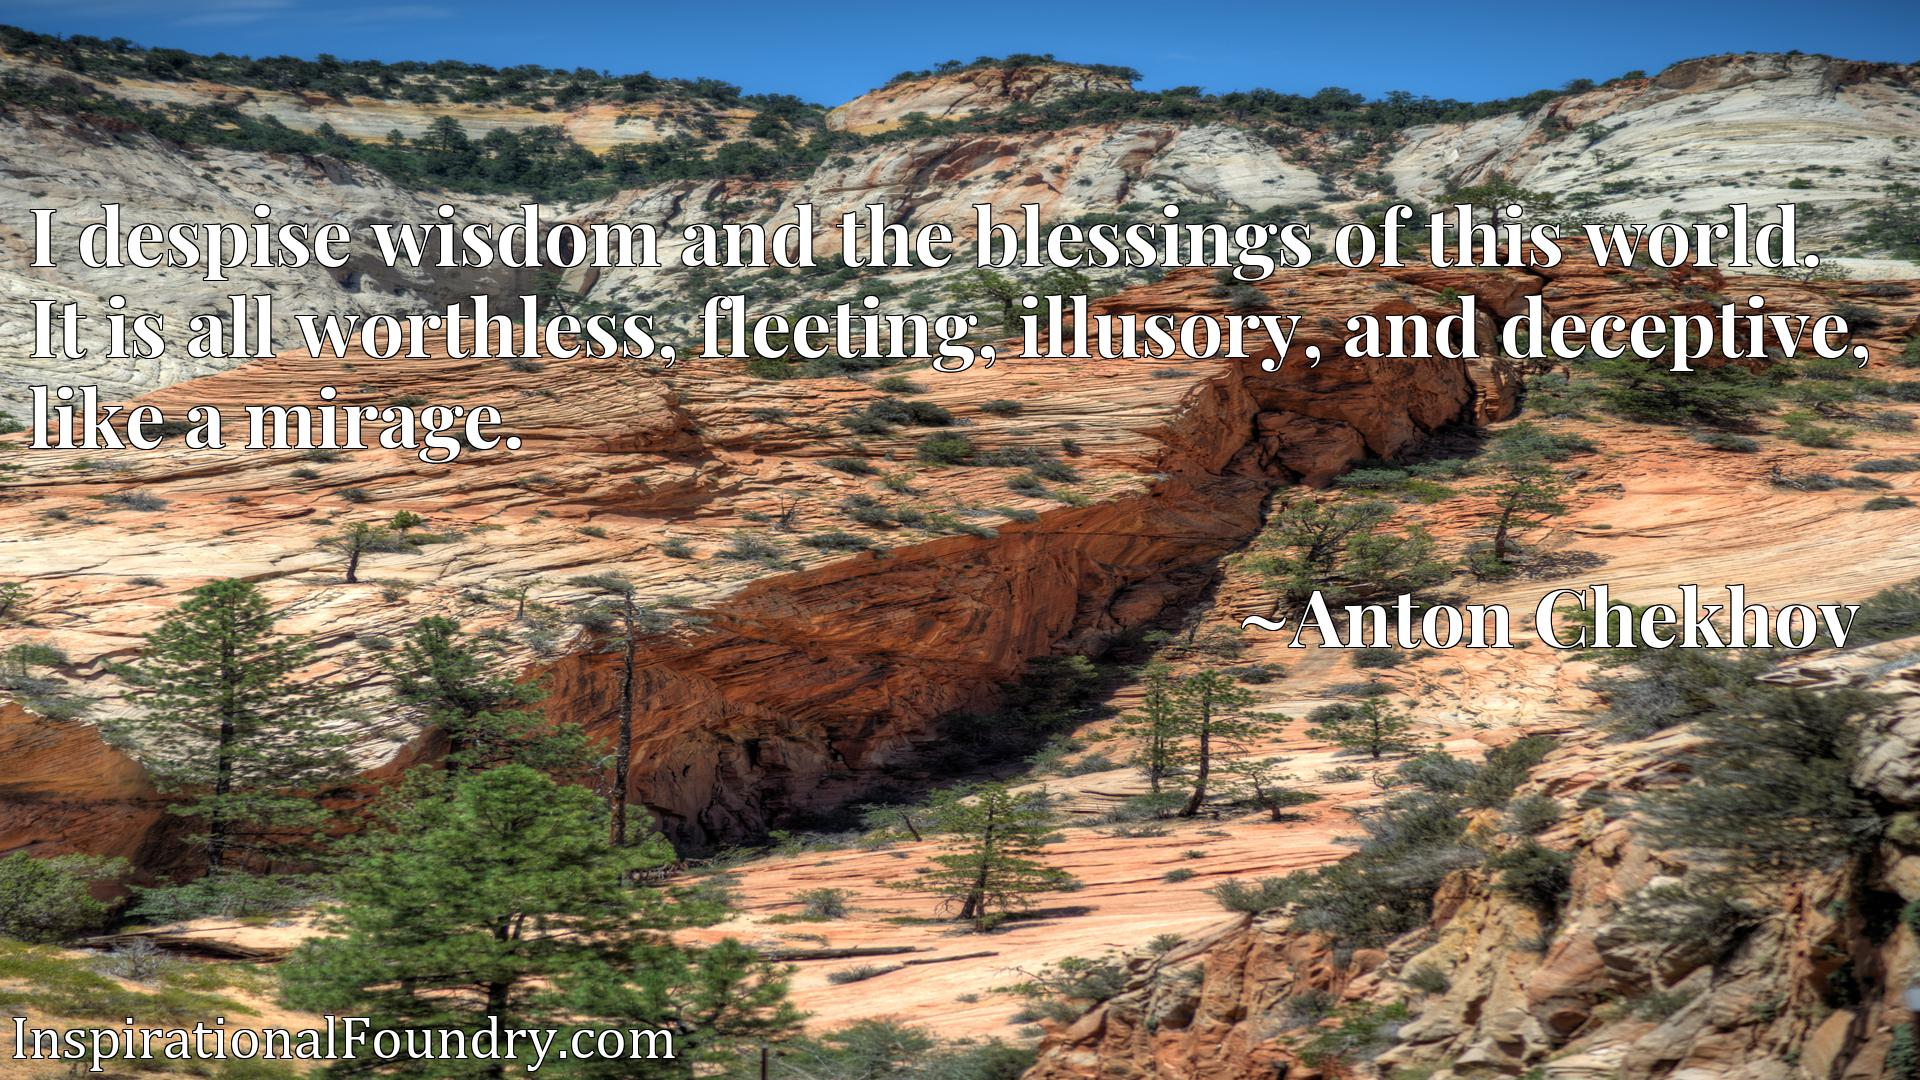 Quote Picture :I despise wisdom and the blessings of this world. It is all worthless, fleeting, illusory, and deceptive, like a mirage.